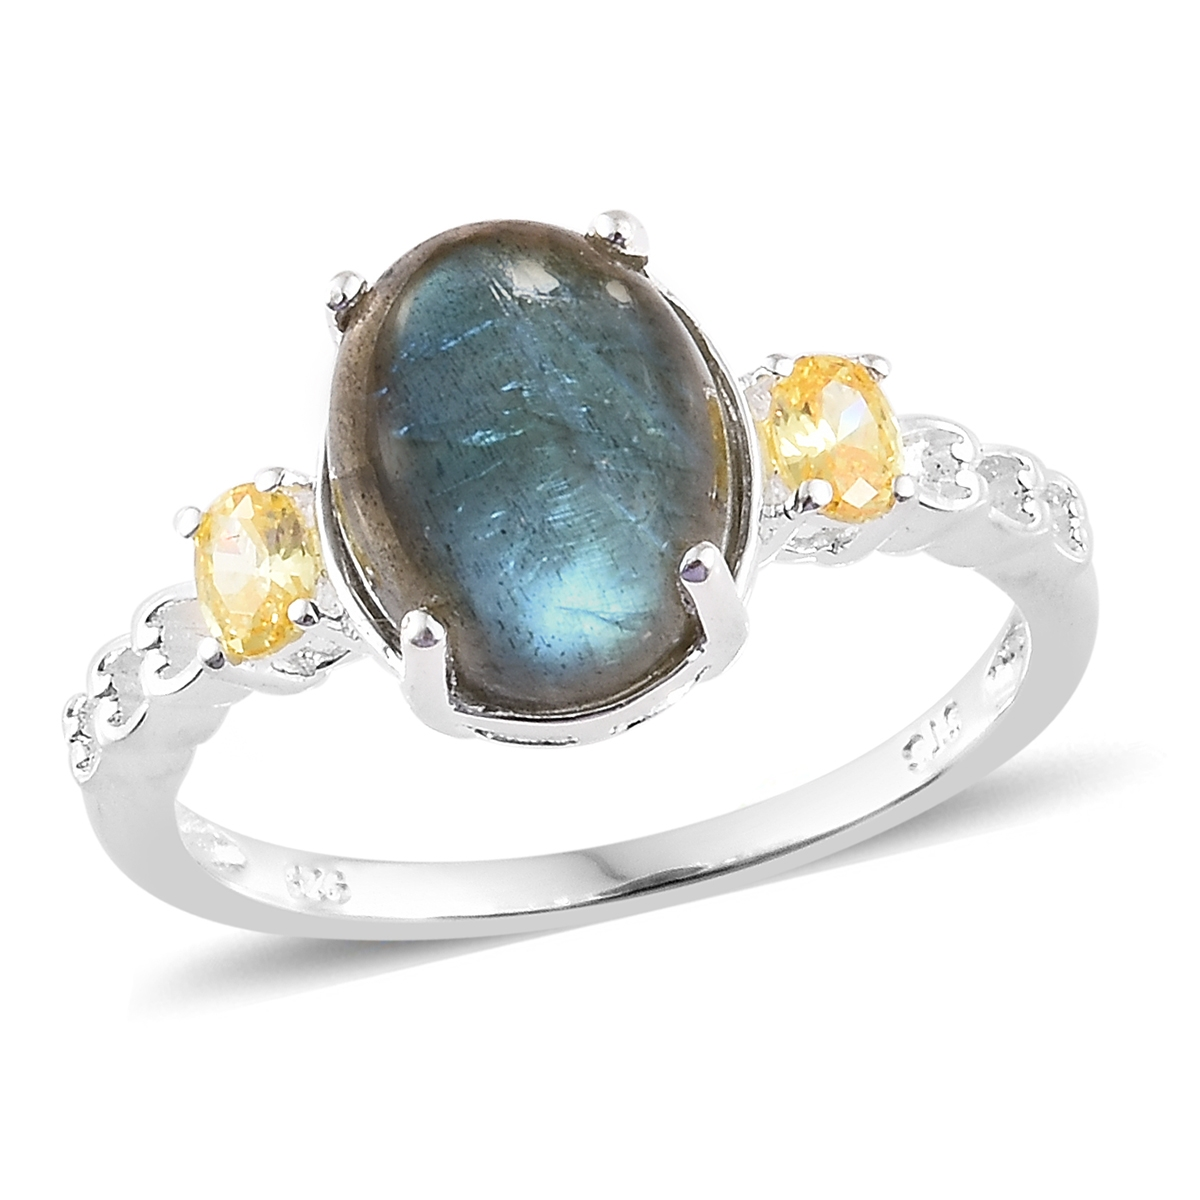 cad4bce265 Malagasy Labradorite, Simulated Yellow Diamond Sterling Silver Ring (Size  6.0) TGW 5.10 cts. | Shop LC